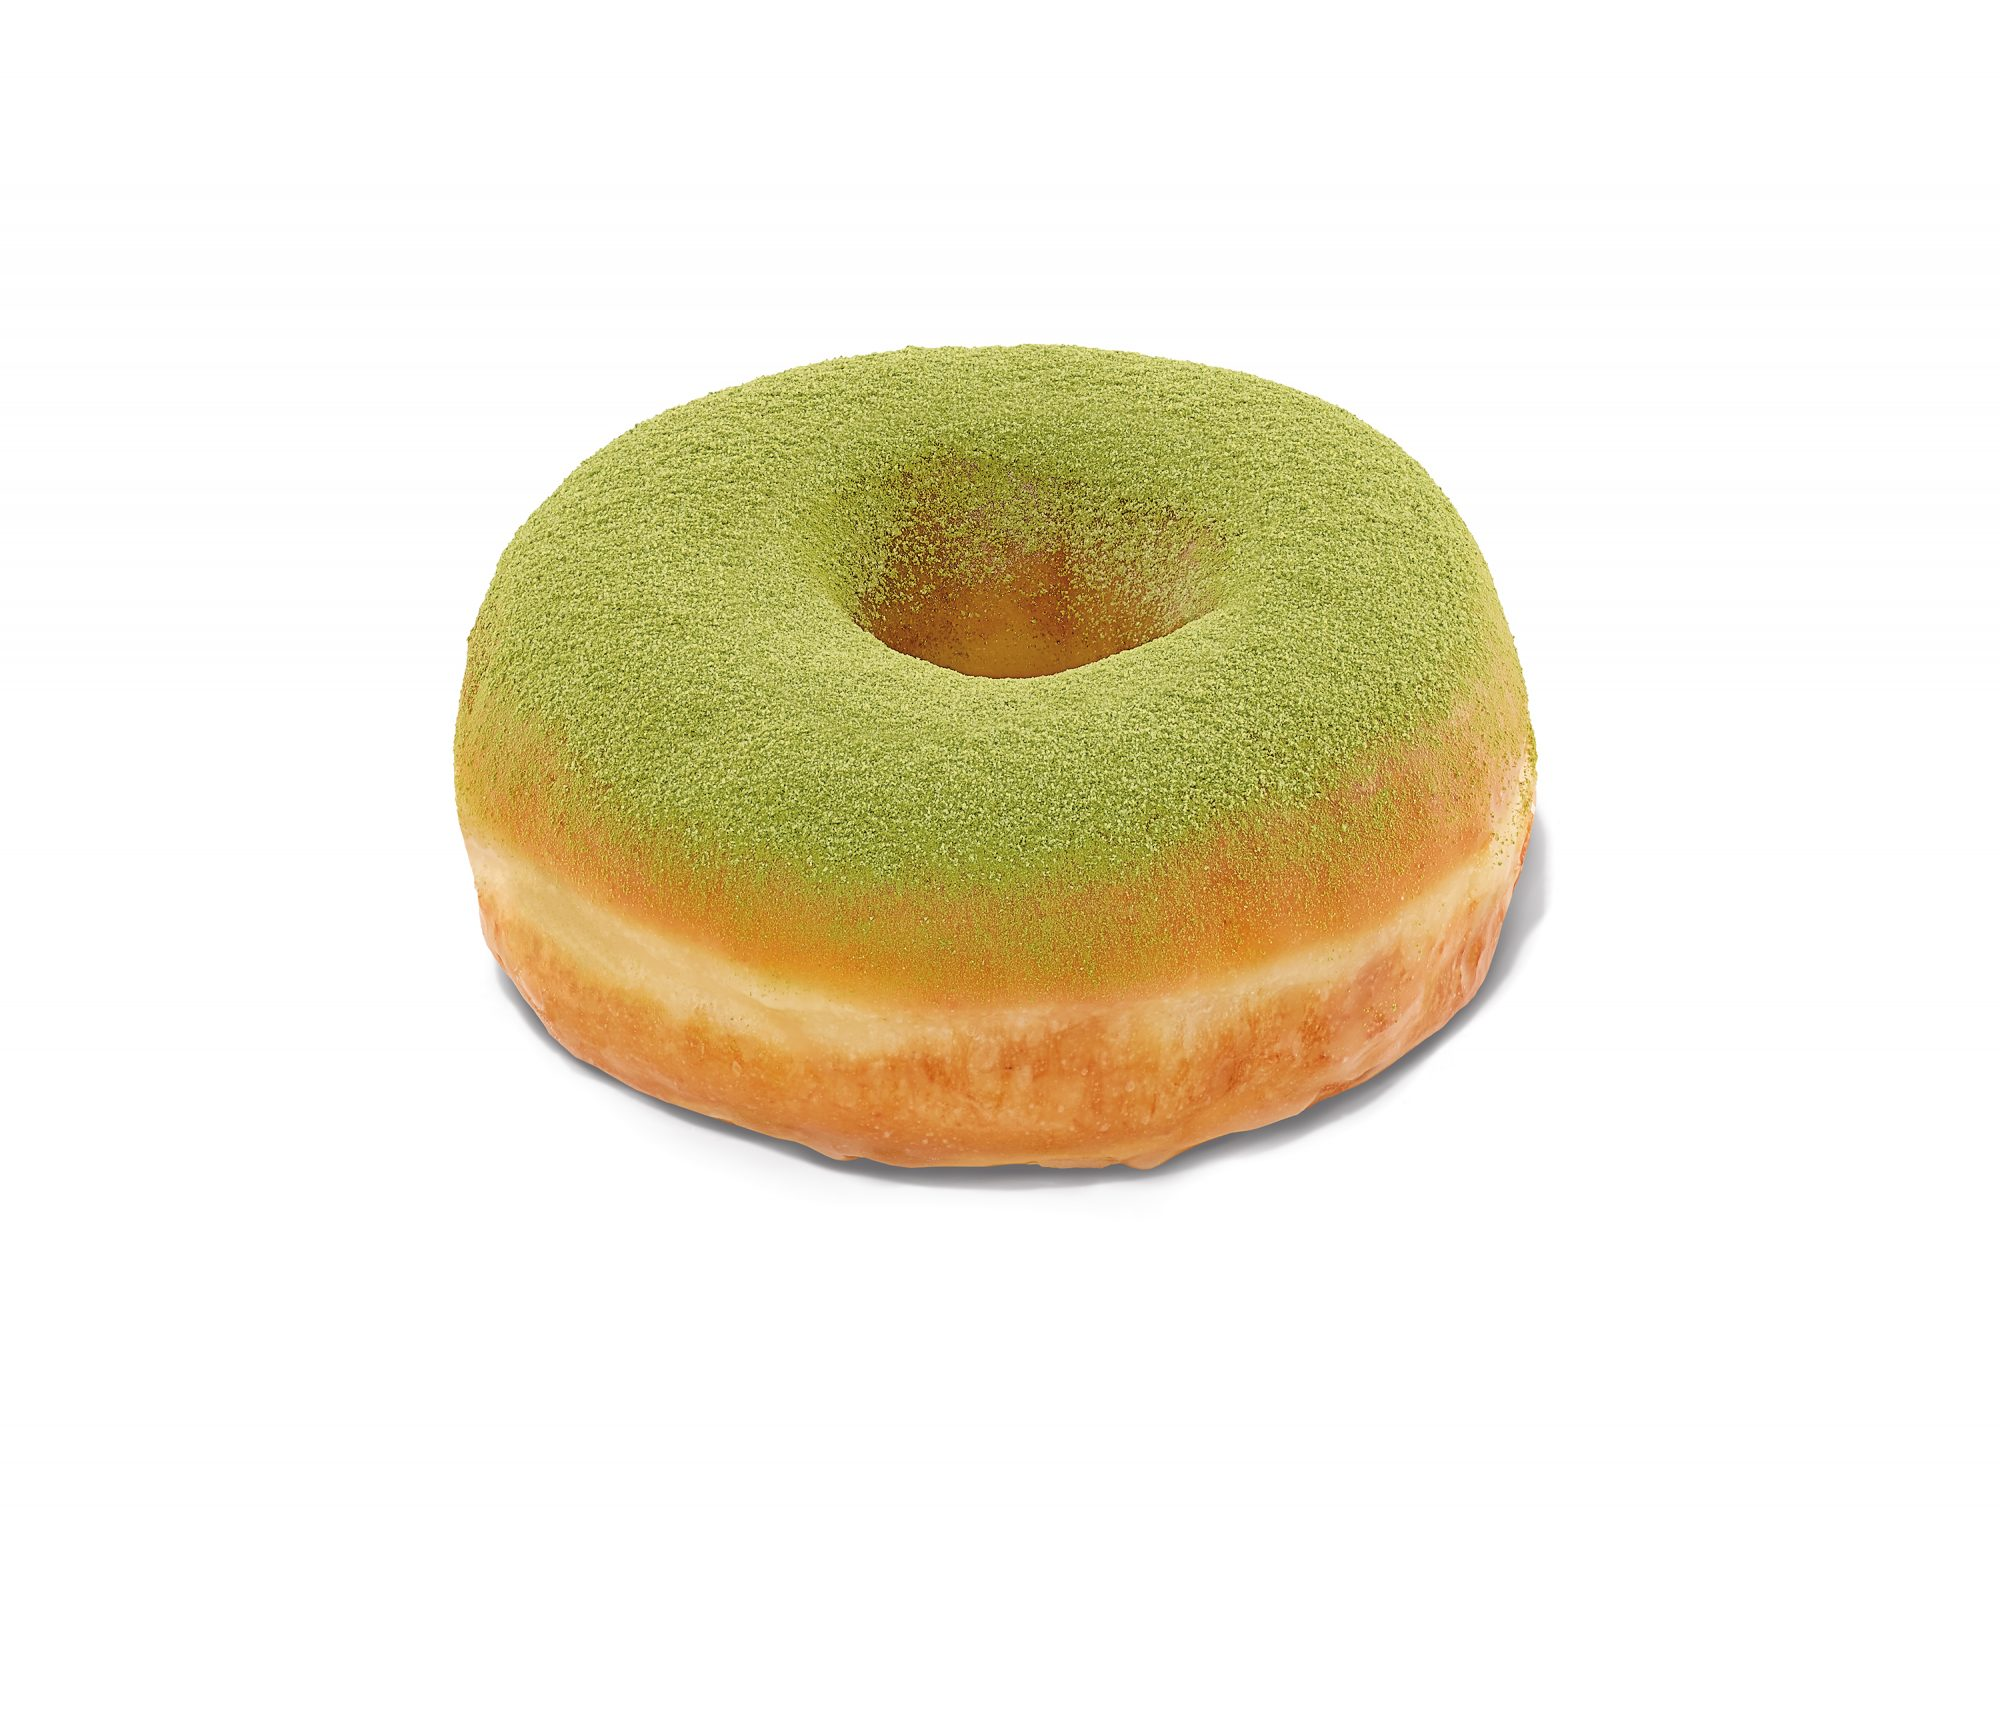 Matcha Topped Donut